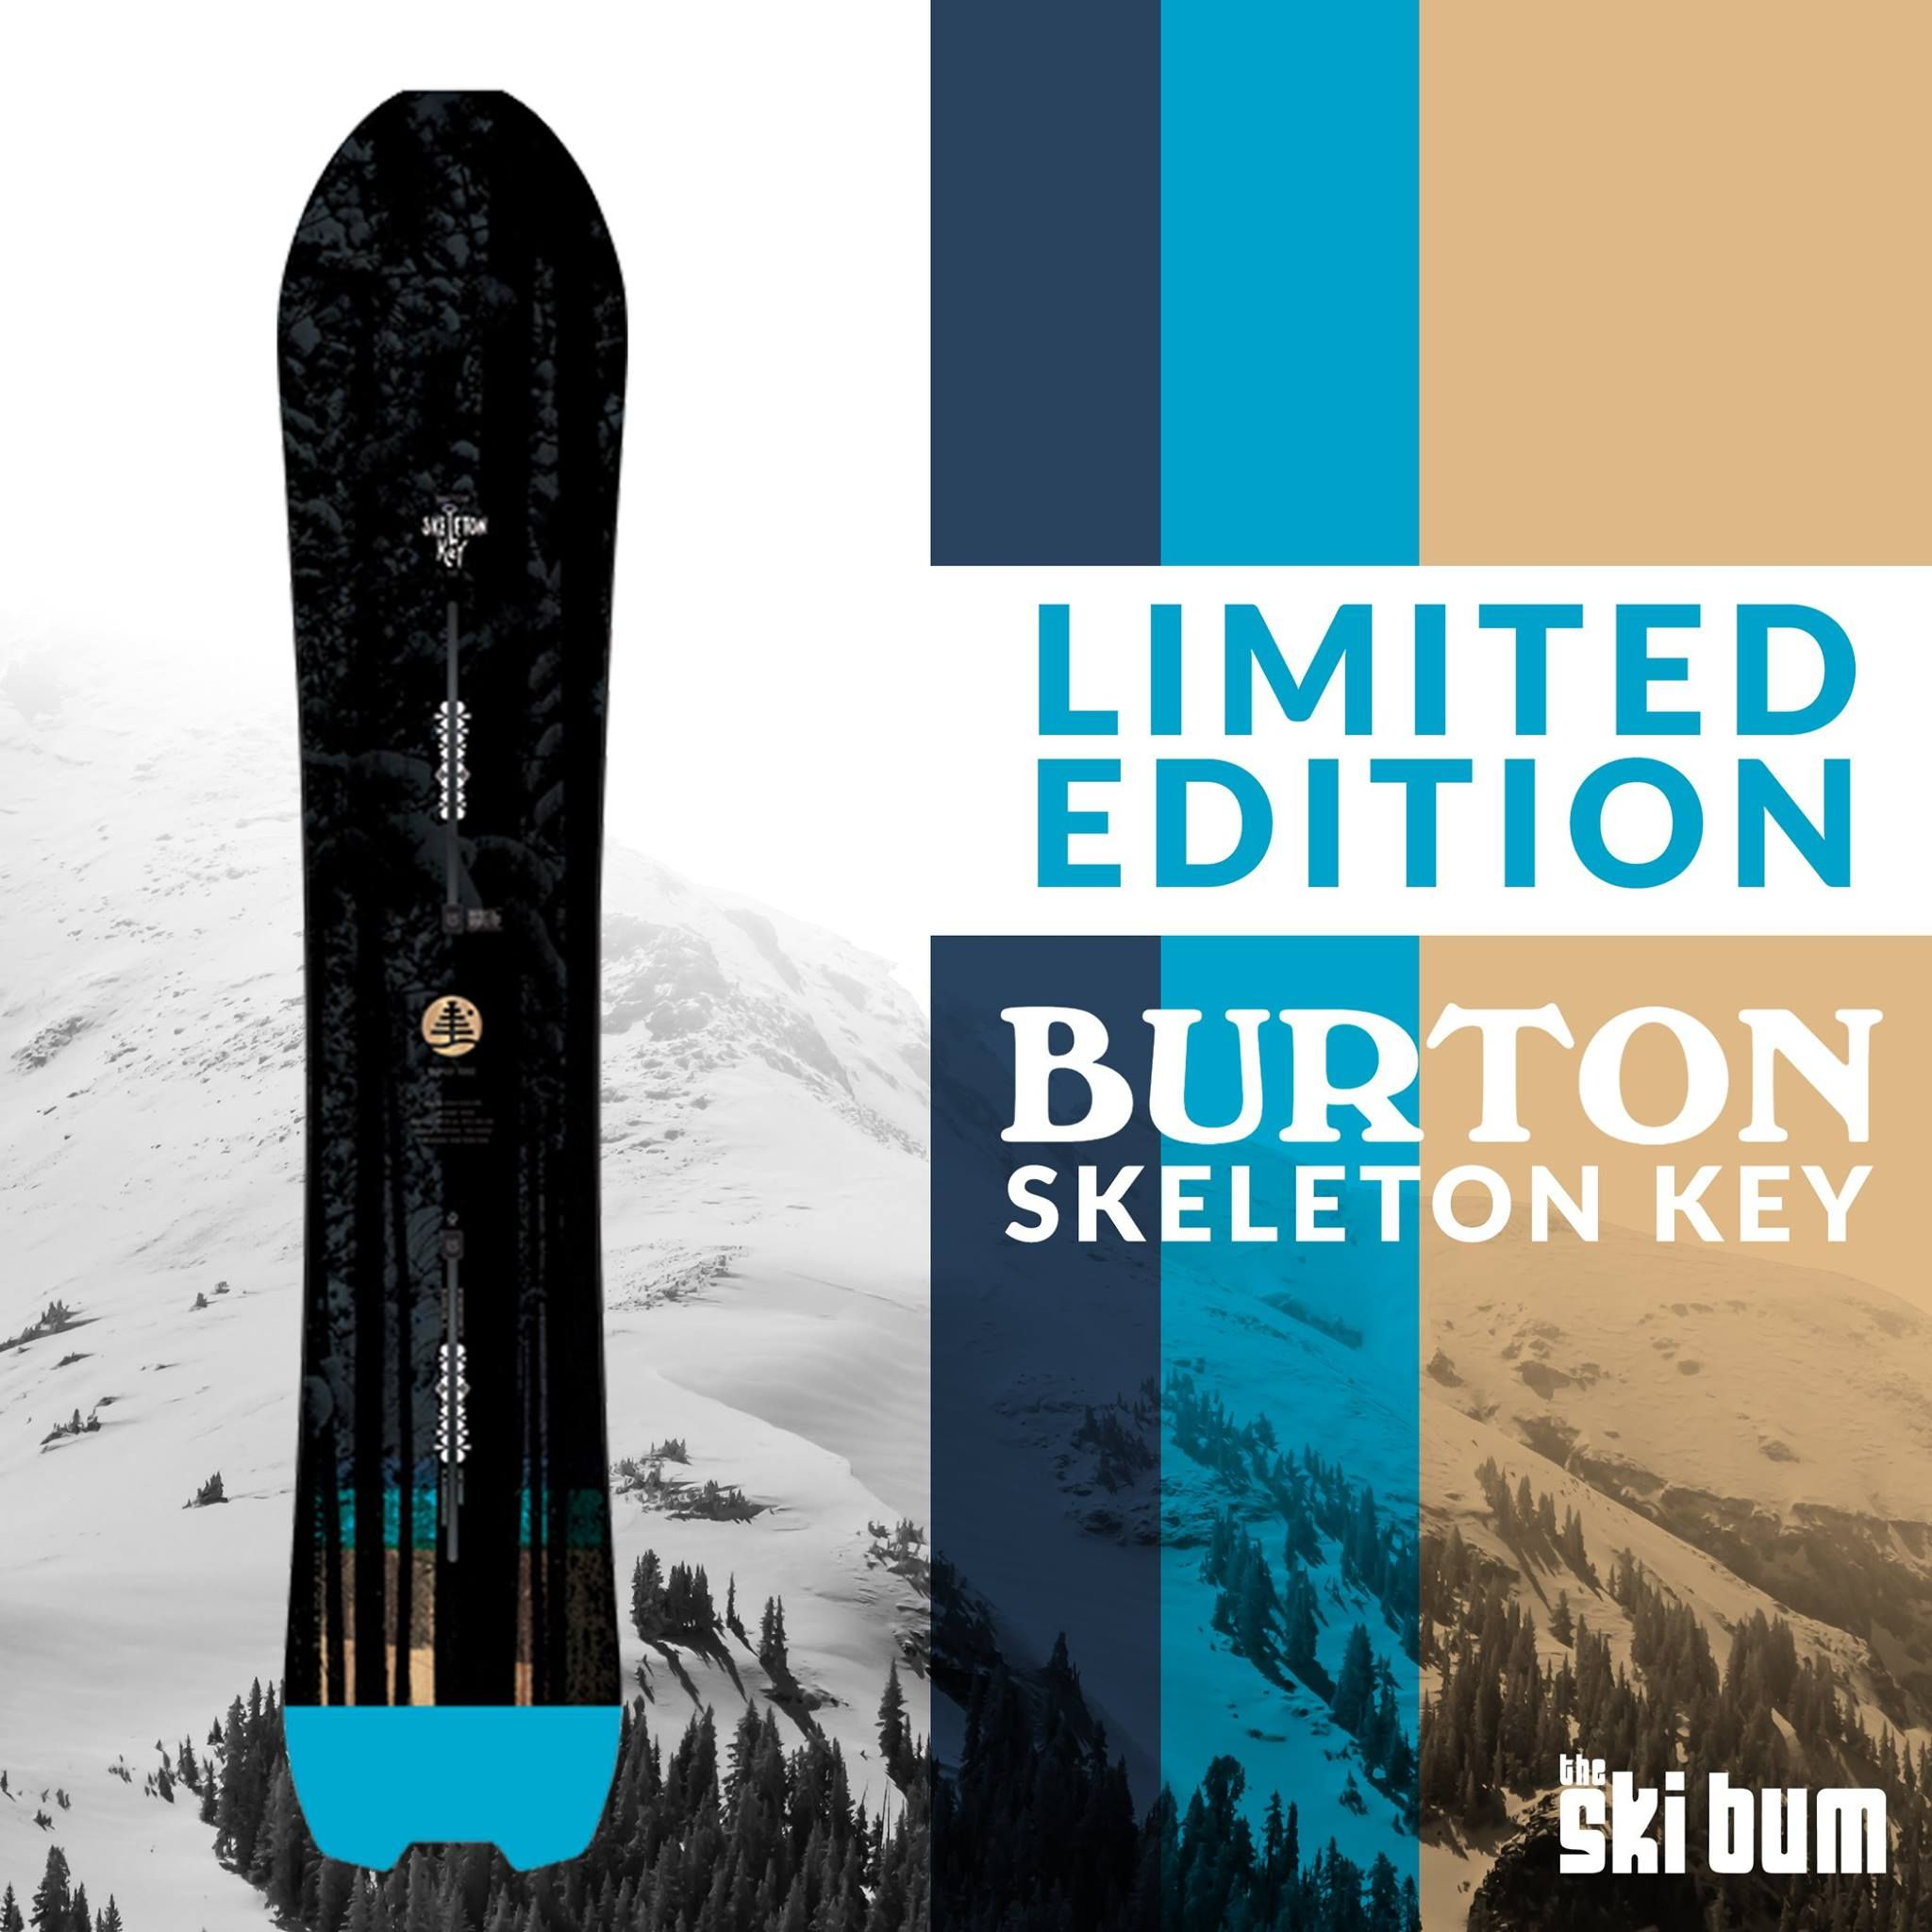 Burton Ft Skeleton Key Snowboard Factory 2nd 649 95 The Ft Skeleton Key Is A Limited Edition Shred Stick That Comes T Snowboarding Gear Snowboard Ski Shop